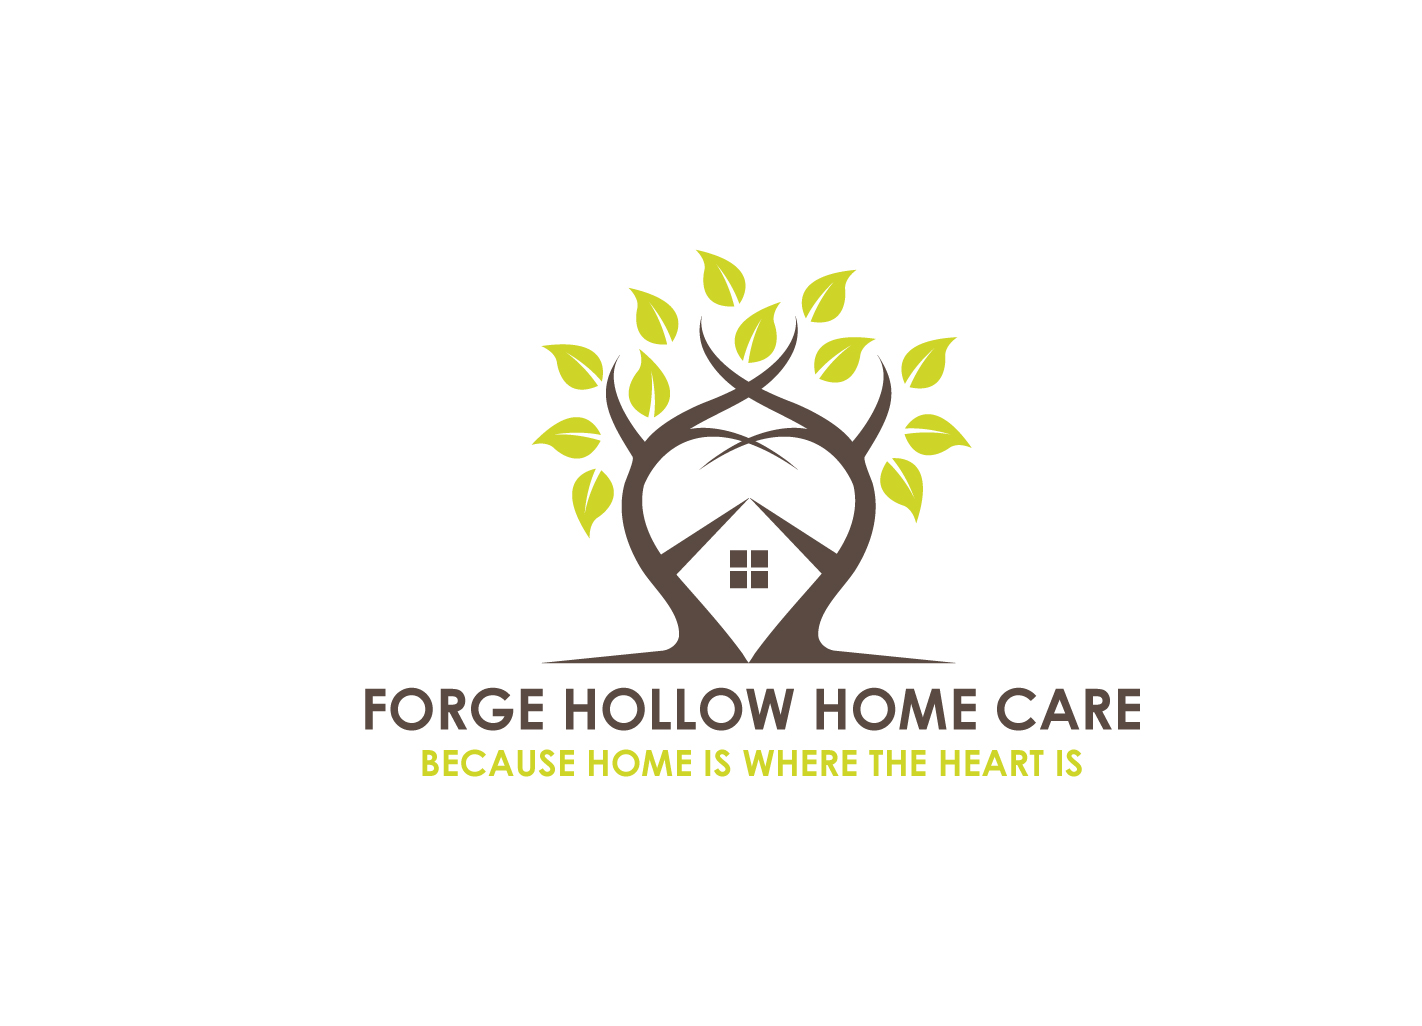 Serious Professional Home Health Care Logo Design For Forge Hollow Home Care By Hih7 Design